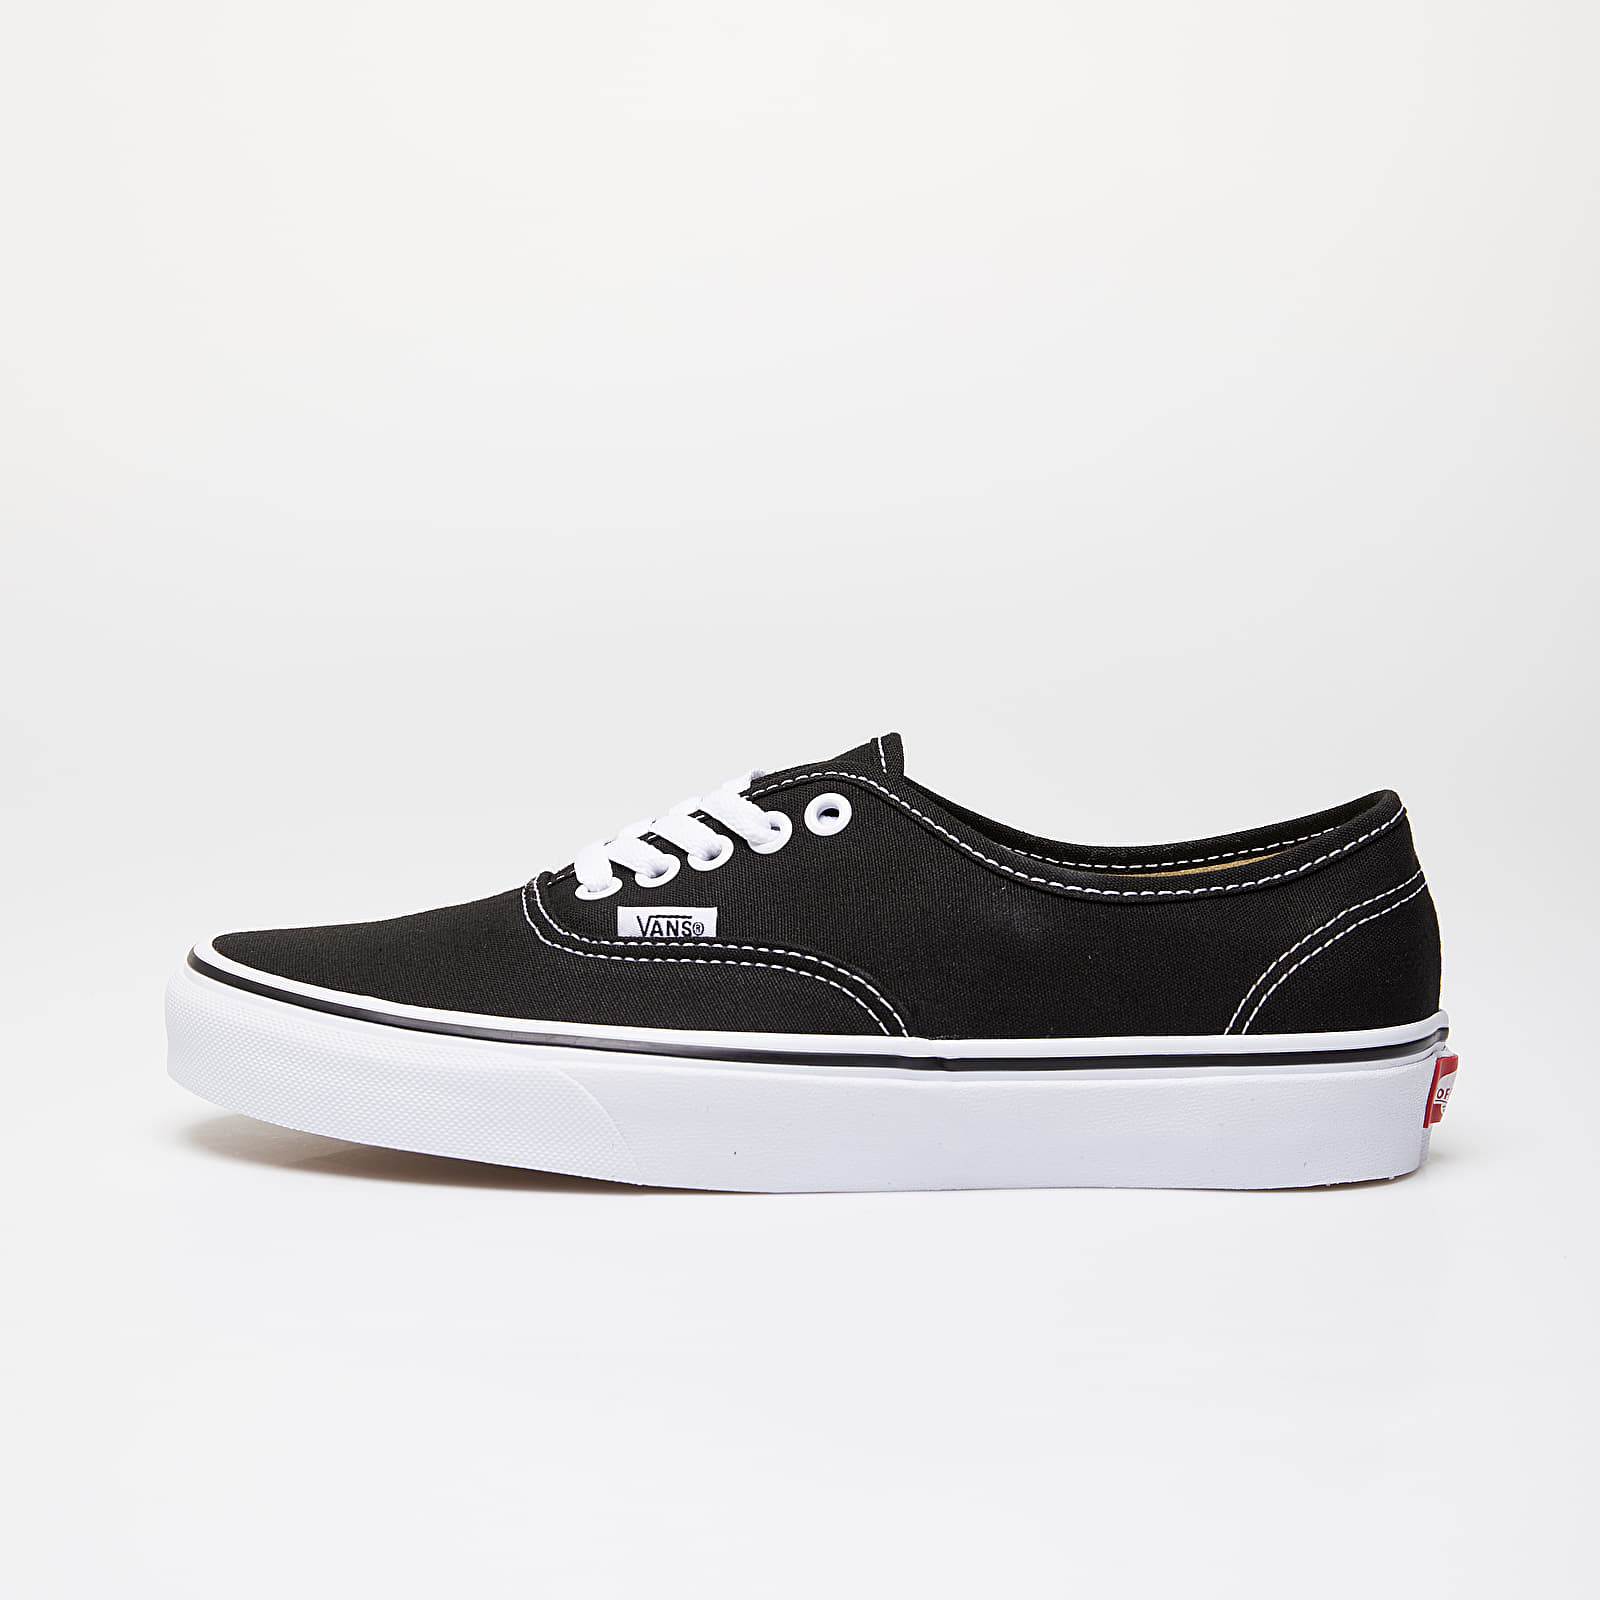 Muške tenisice Vans Authentic Black/ True White